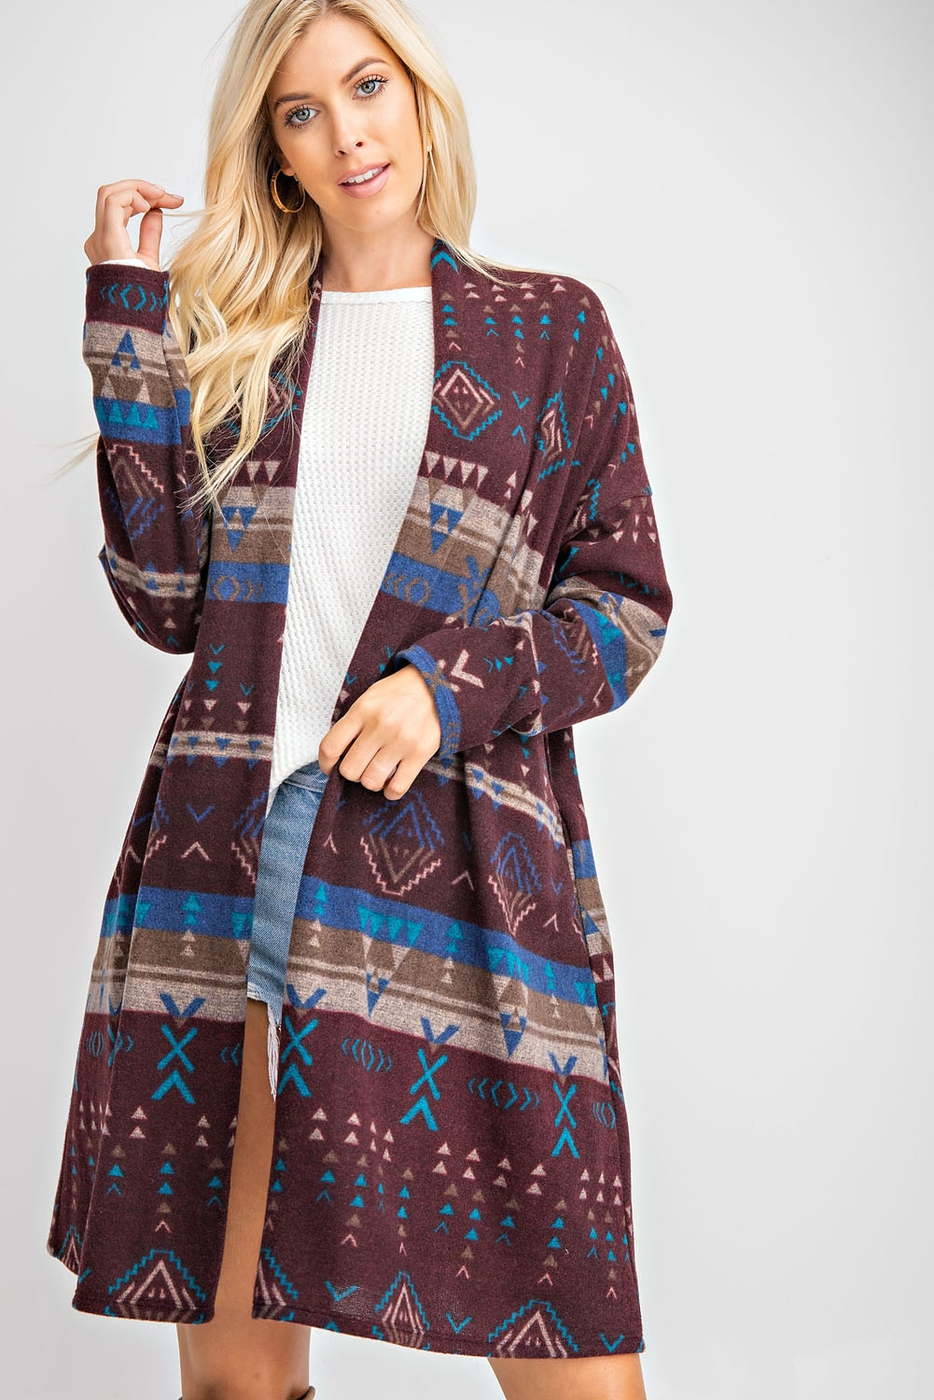 ETHNIC PRINT KNIT CARDIGAN WITH POCK - orangeshine.com